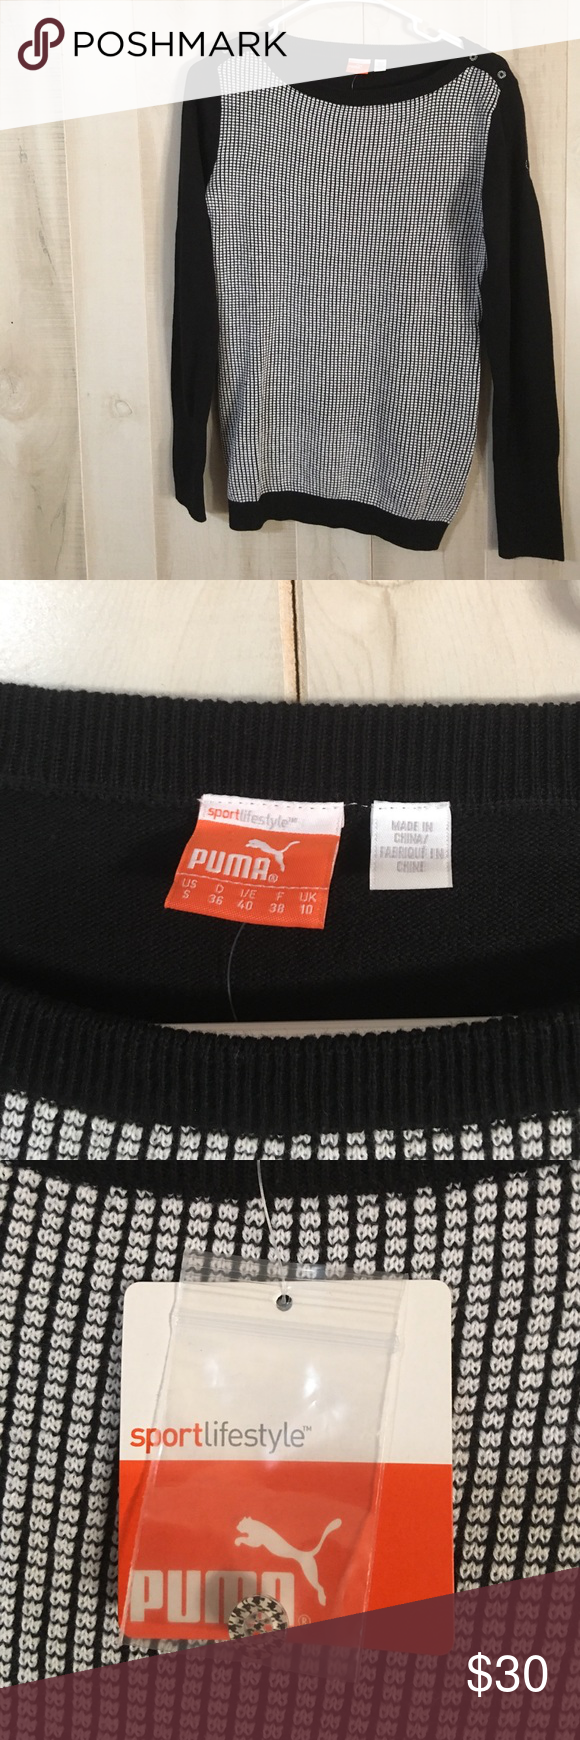 """NWT Puma Long Sleeve Active Sweater Size Small NWT Puma Long Sleeve Active Sweater , extra Button with tag, black and white design, non-Smoking home......................... Measurement at arm pit without stretching the material is 17"""" Puma Sweaters"""